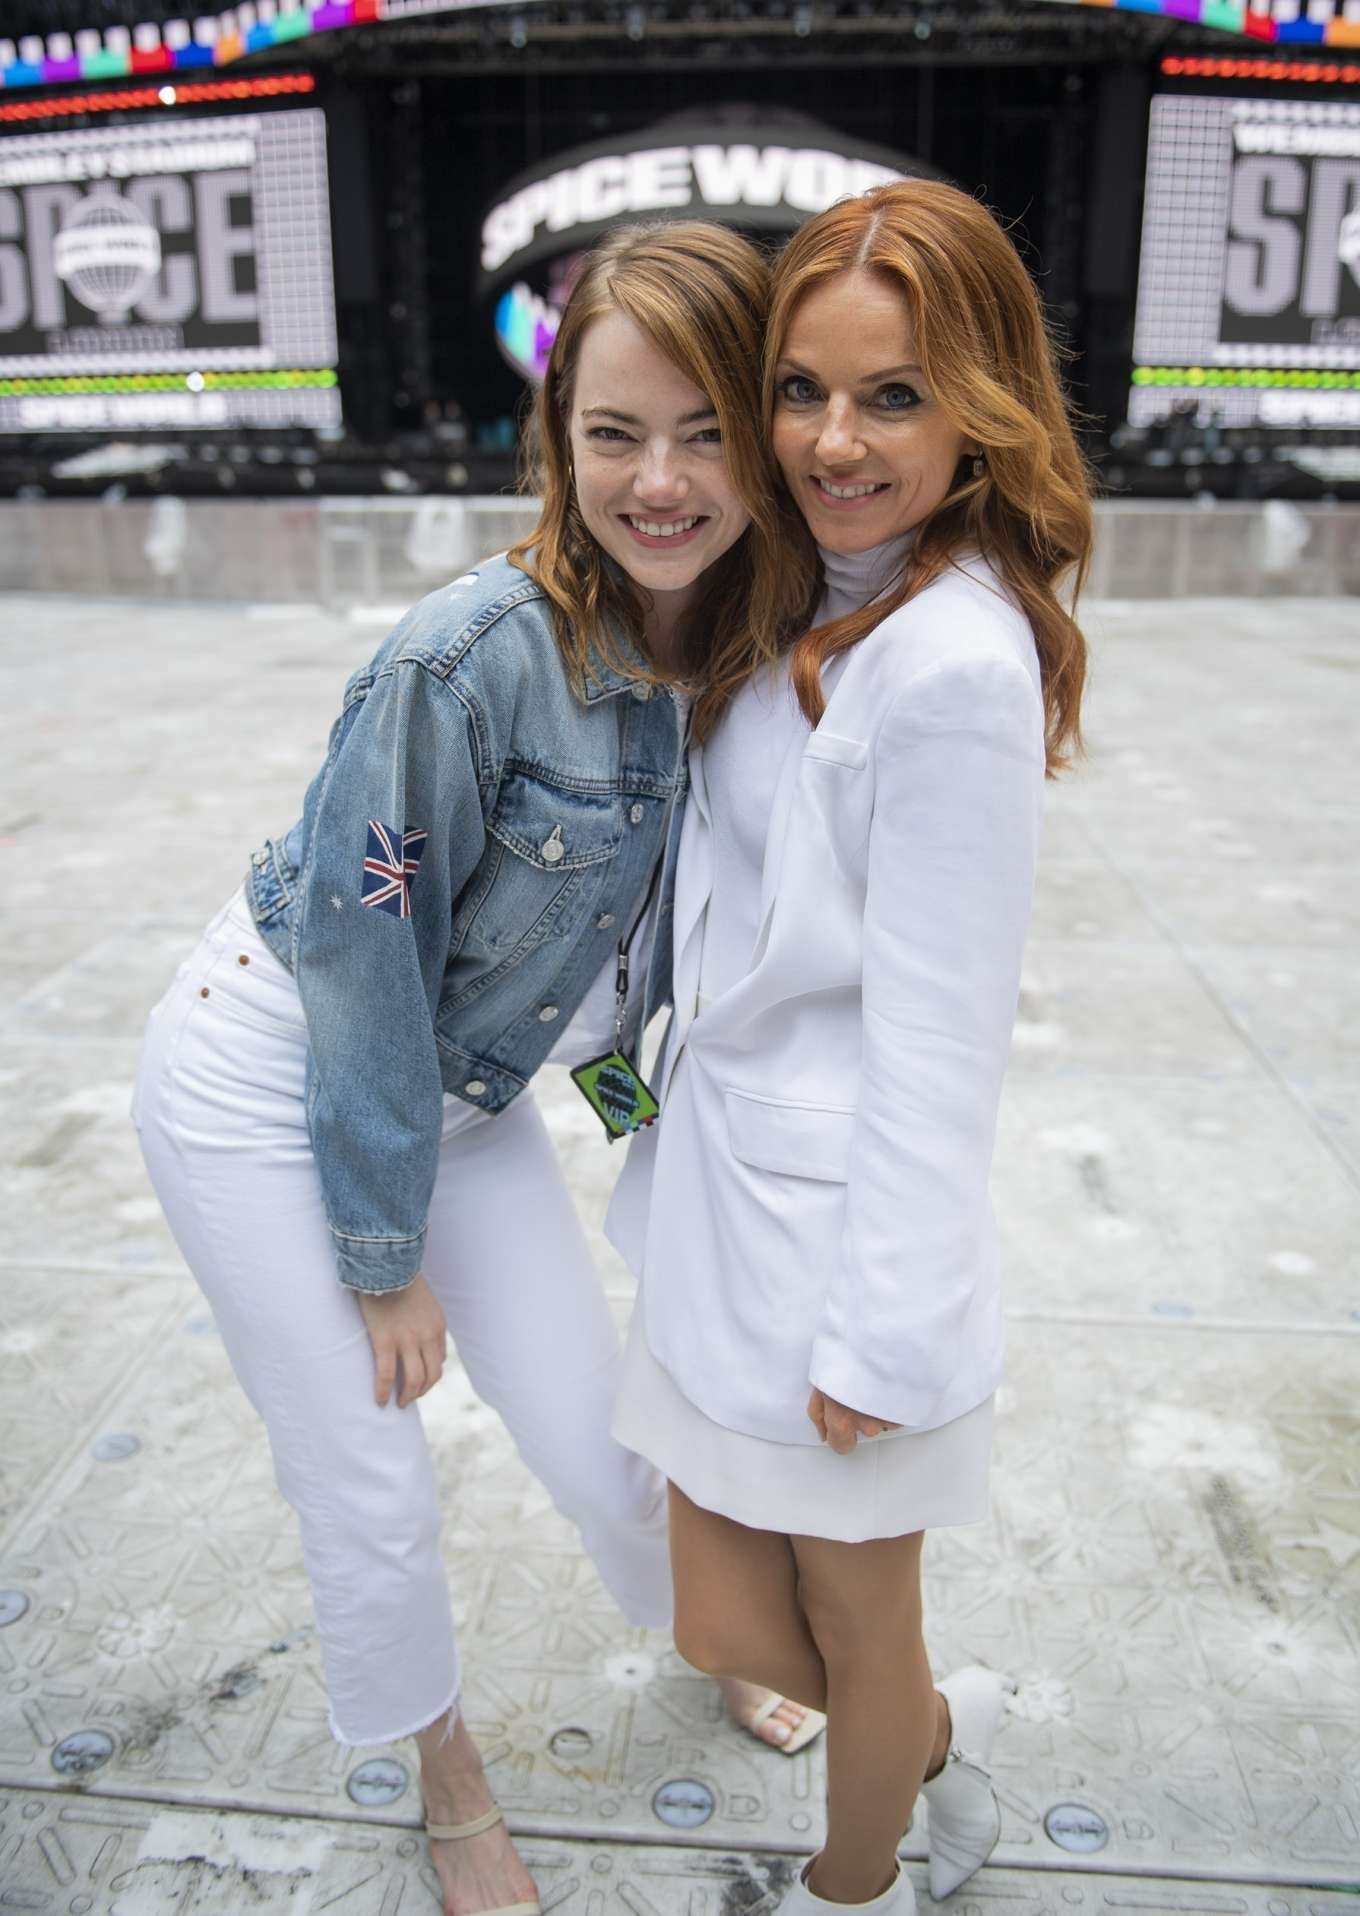 The Spice Girls - Meets girl band HAIM and Emma Stone at Wembley Stadium in London